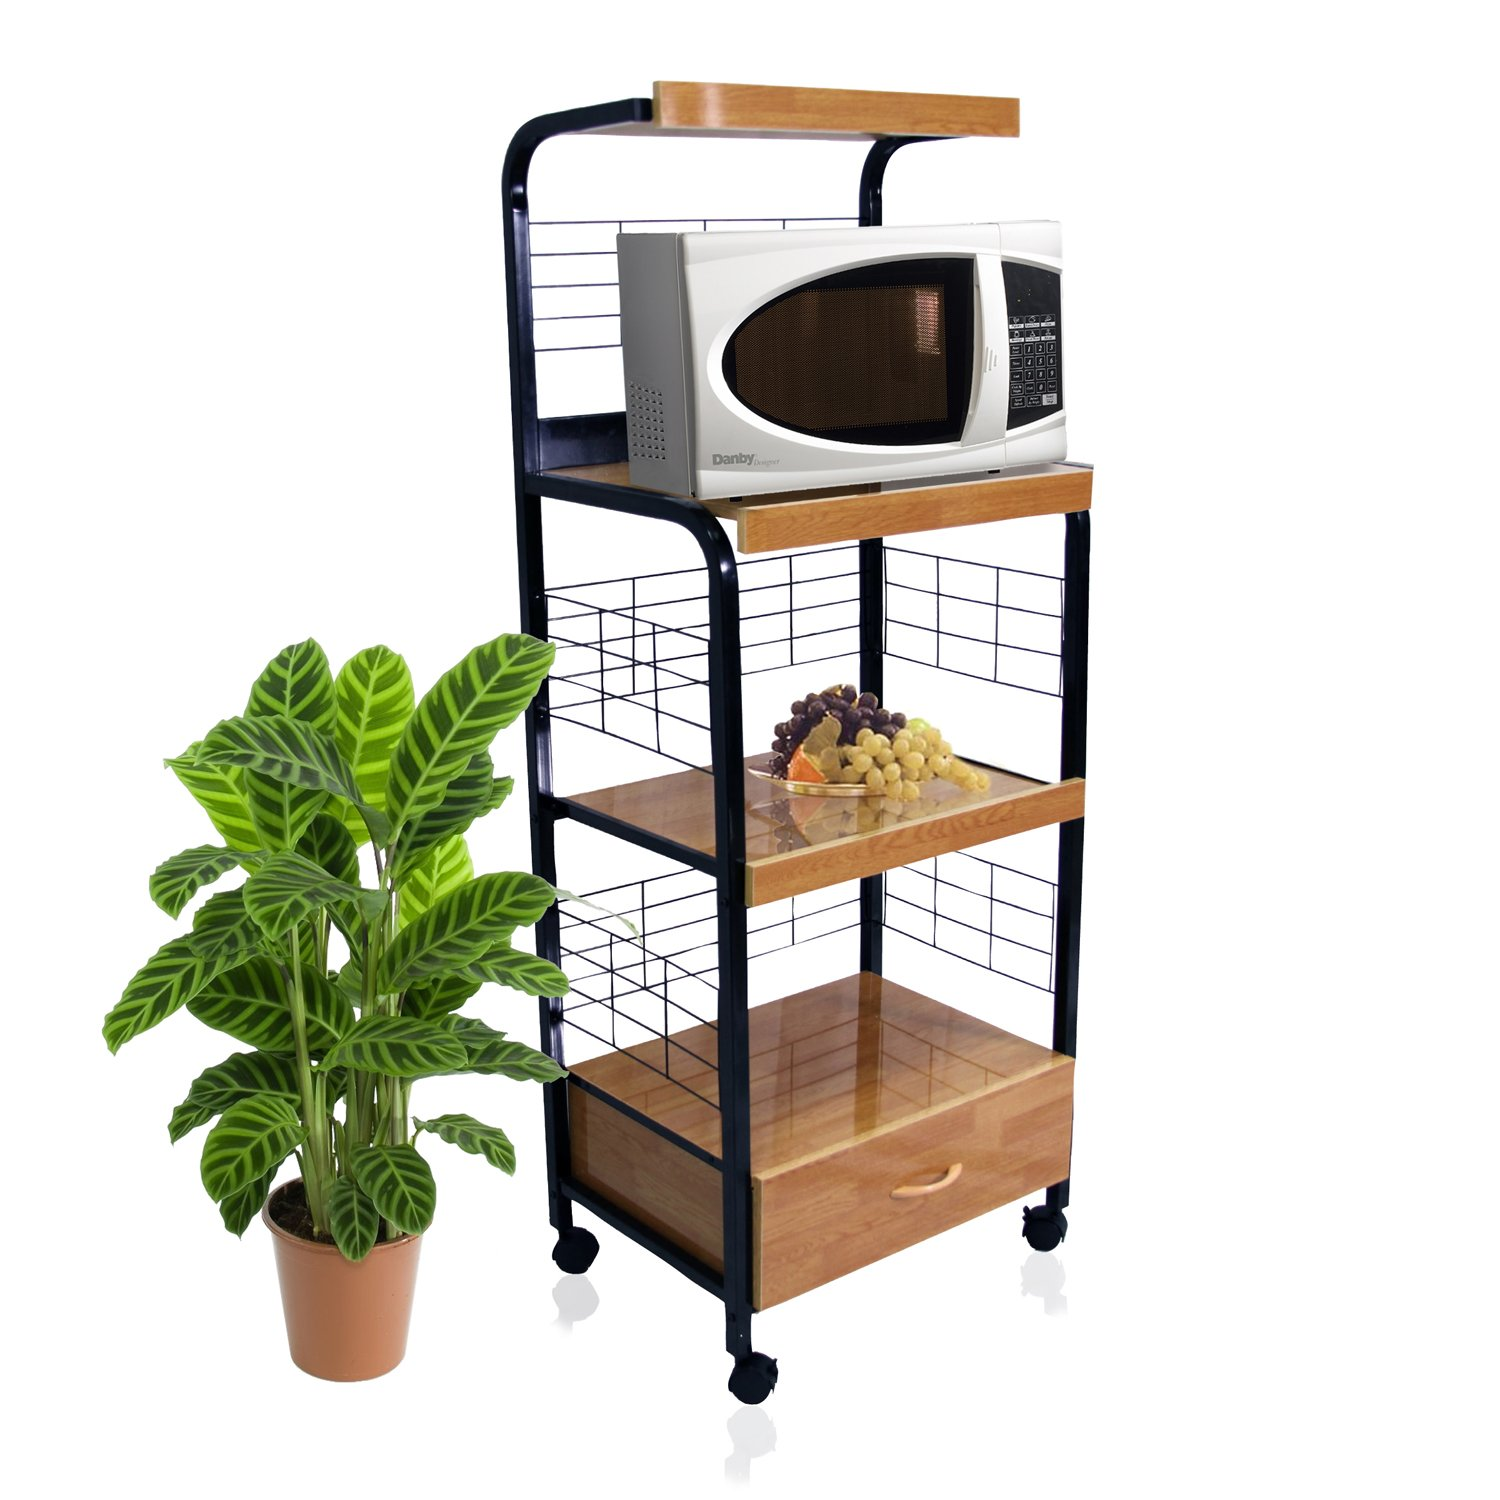 Home Source Industries 4403 Metal Microwave Cart with 2 Electrical Outlets, Black with Light Wood Trim by Home Source Industries (Image #2)